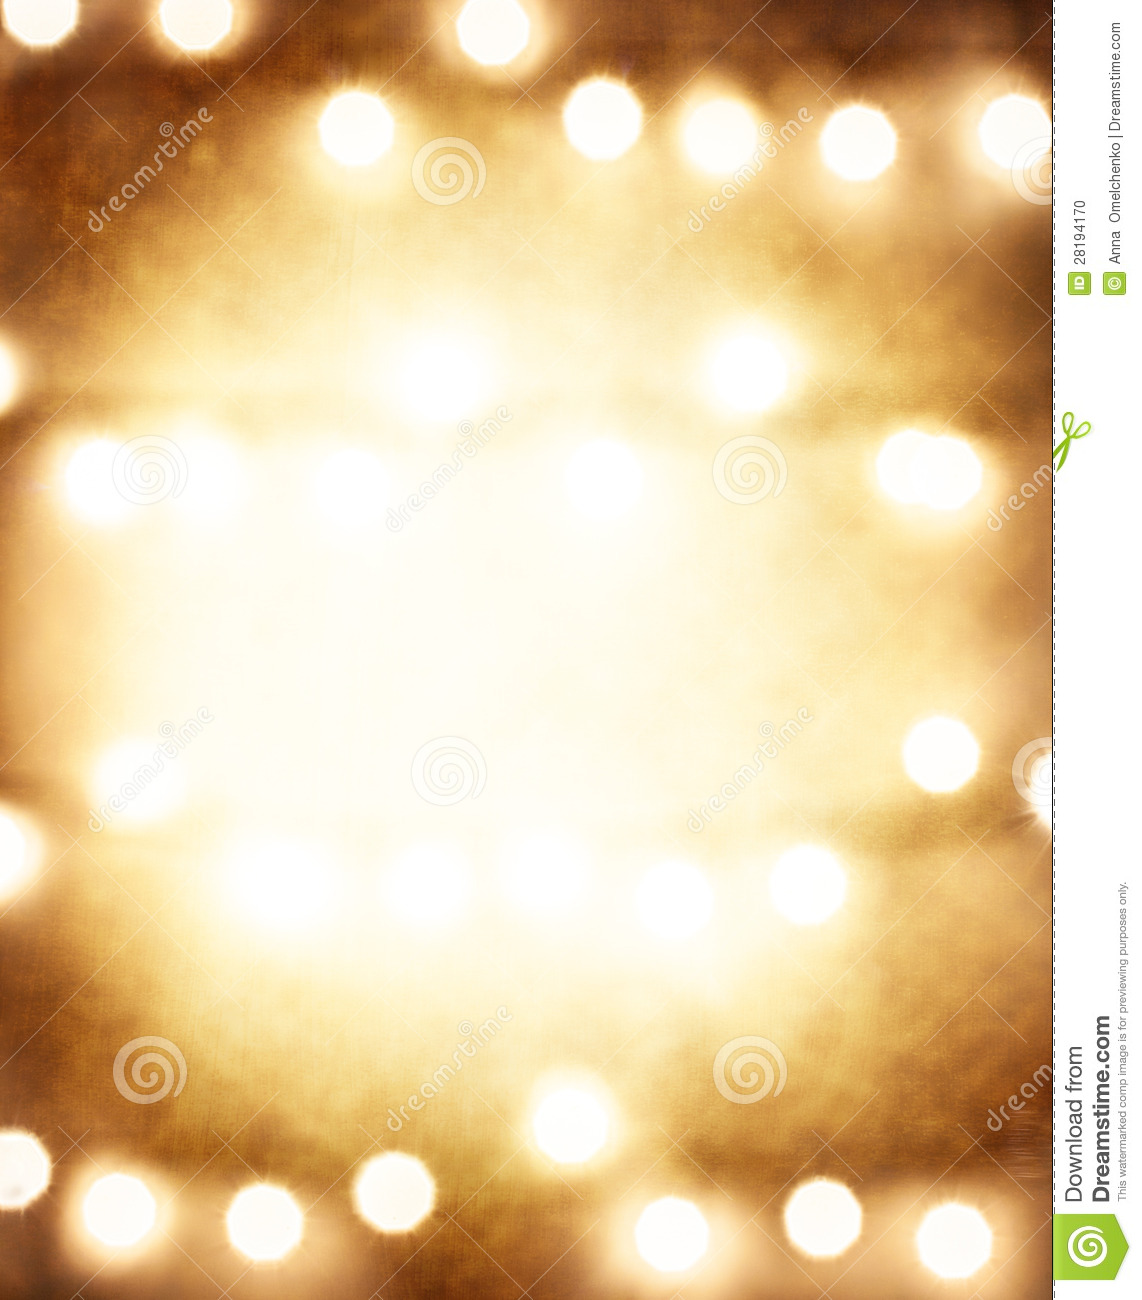 of grunge brown festive background, abstract blur backdrop, Christmas ...